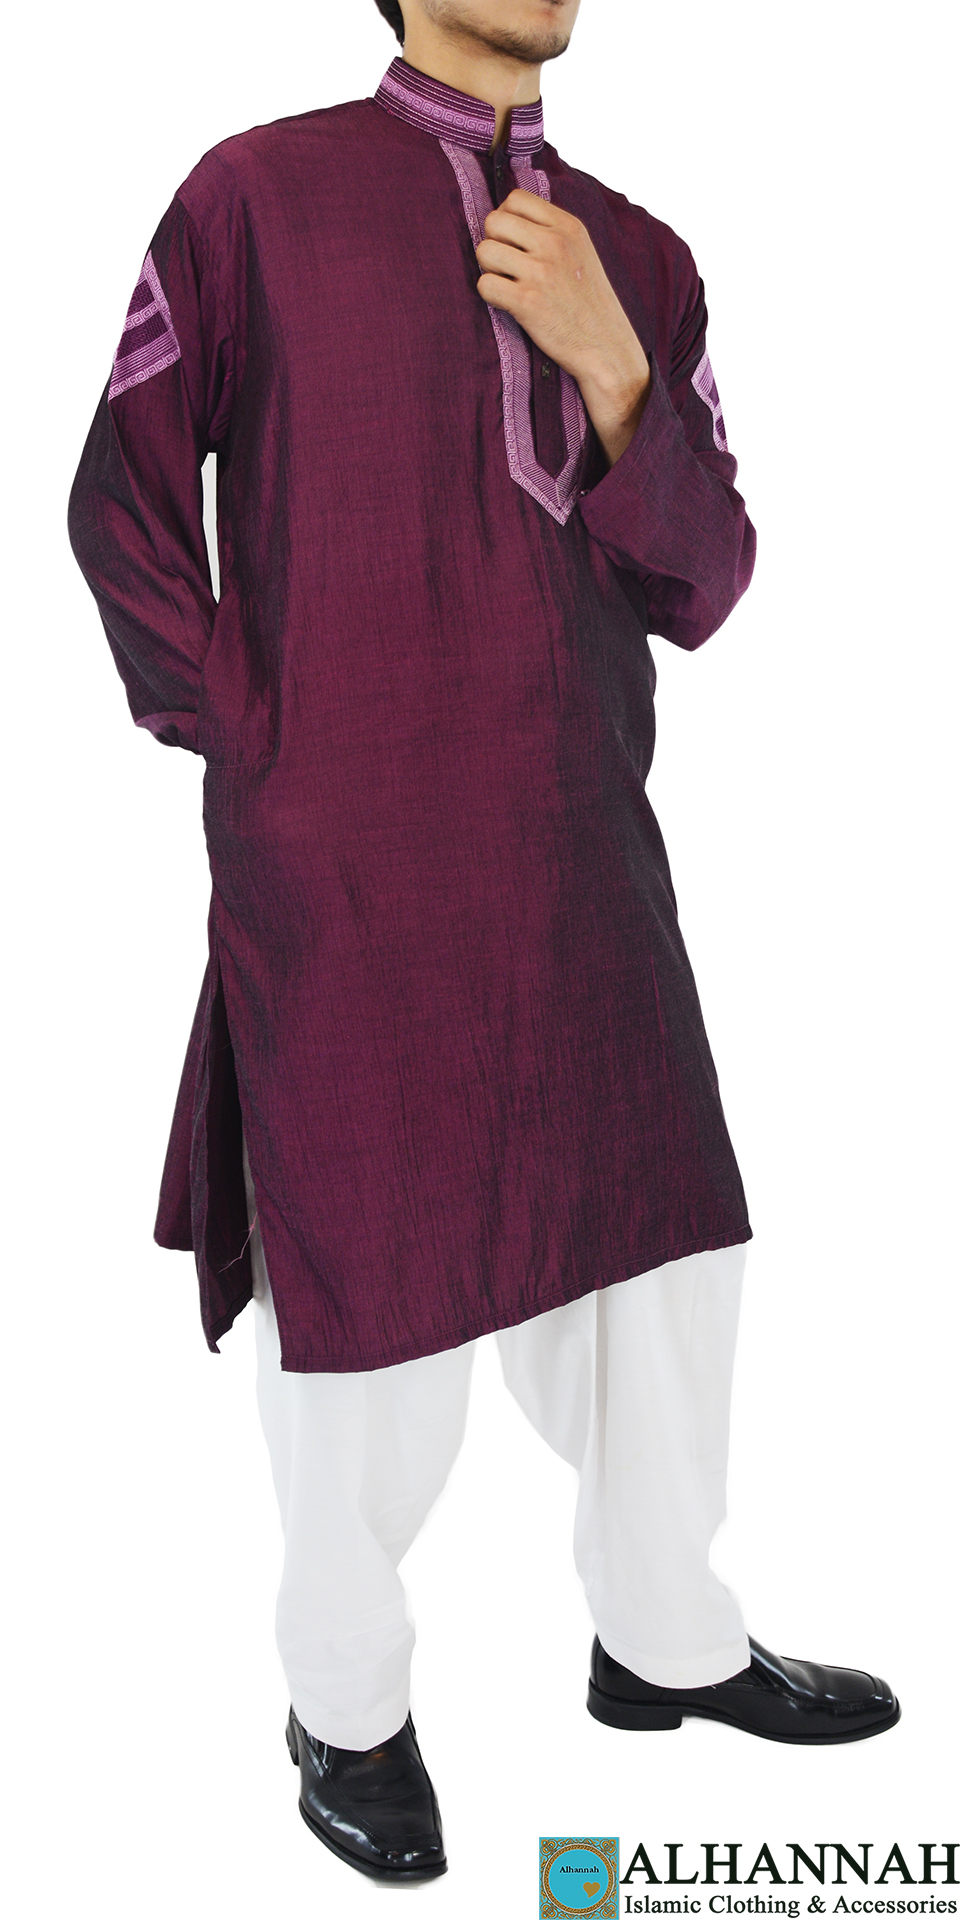 ME712 Abbasi Mens Maroon Embroidered Salwar with Button up front